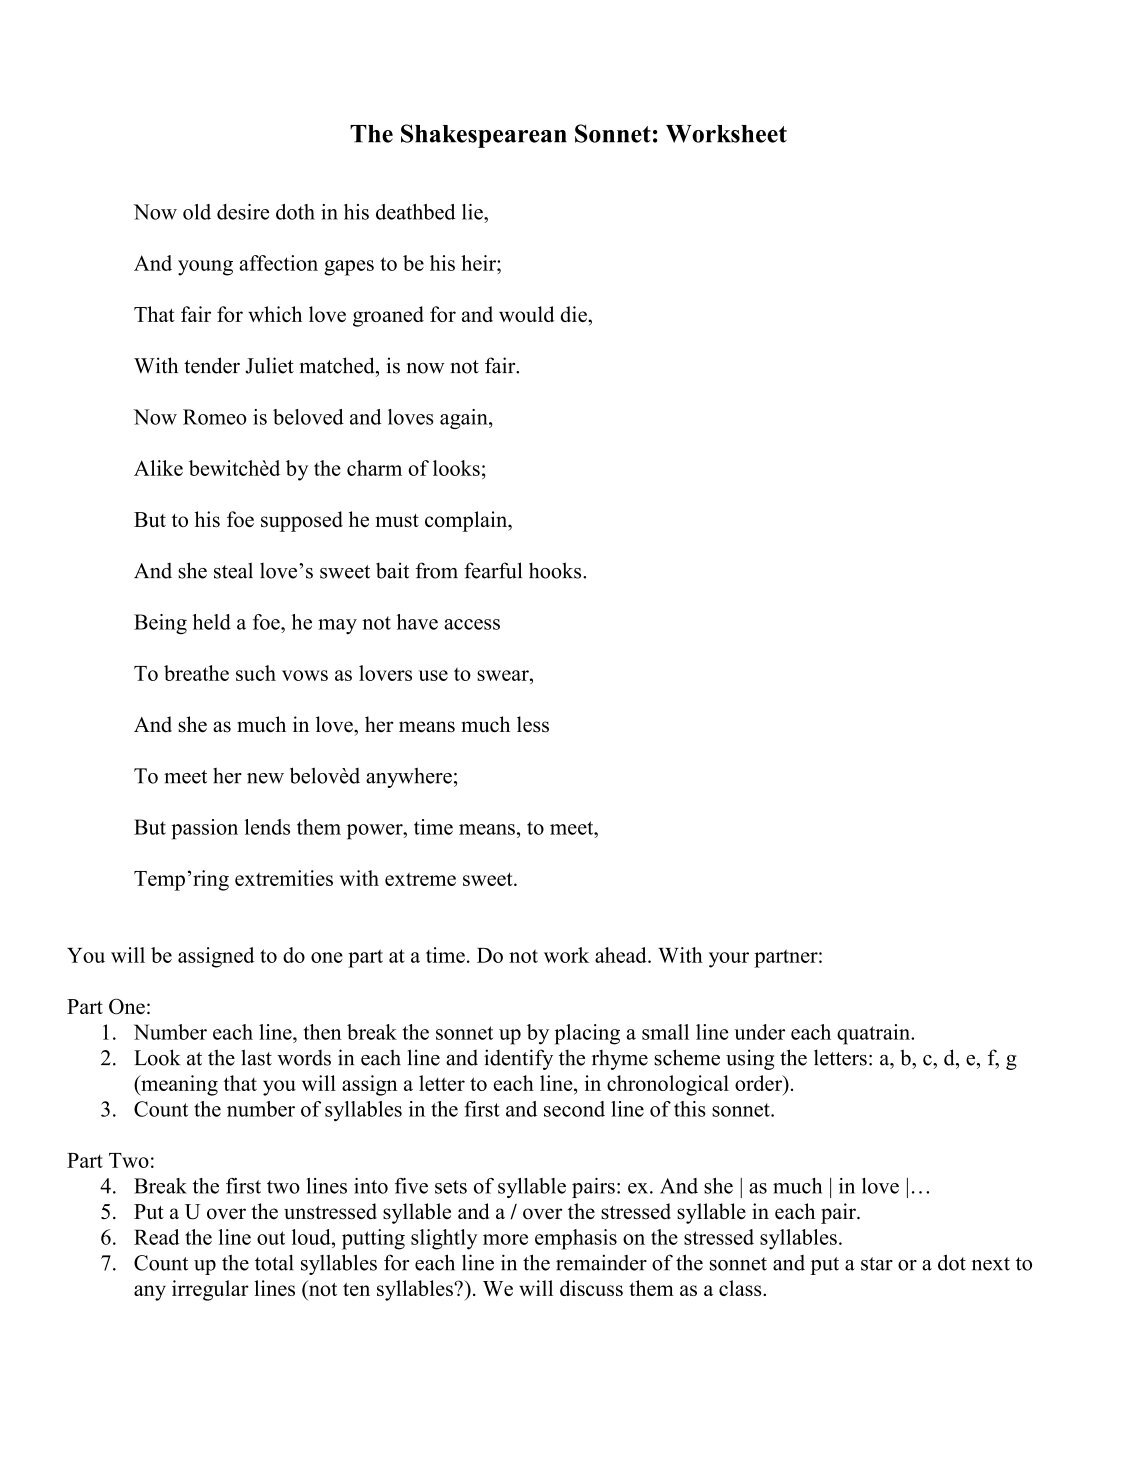 Possible Poetry Study J F Ross Grade 9 Academic Class.How To Write  education, alphabet worksheets, learning, worksheets, and printable worksheets Understanding Poems Worksheets 2 1471 x 1137